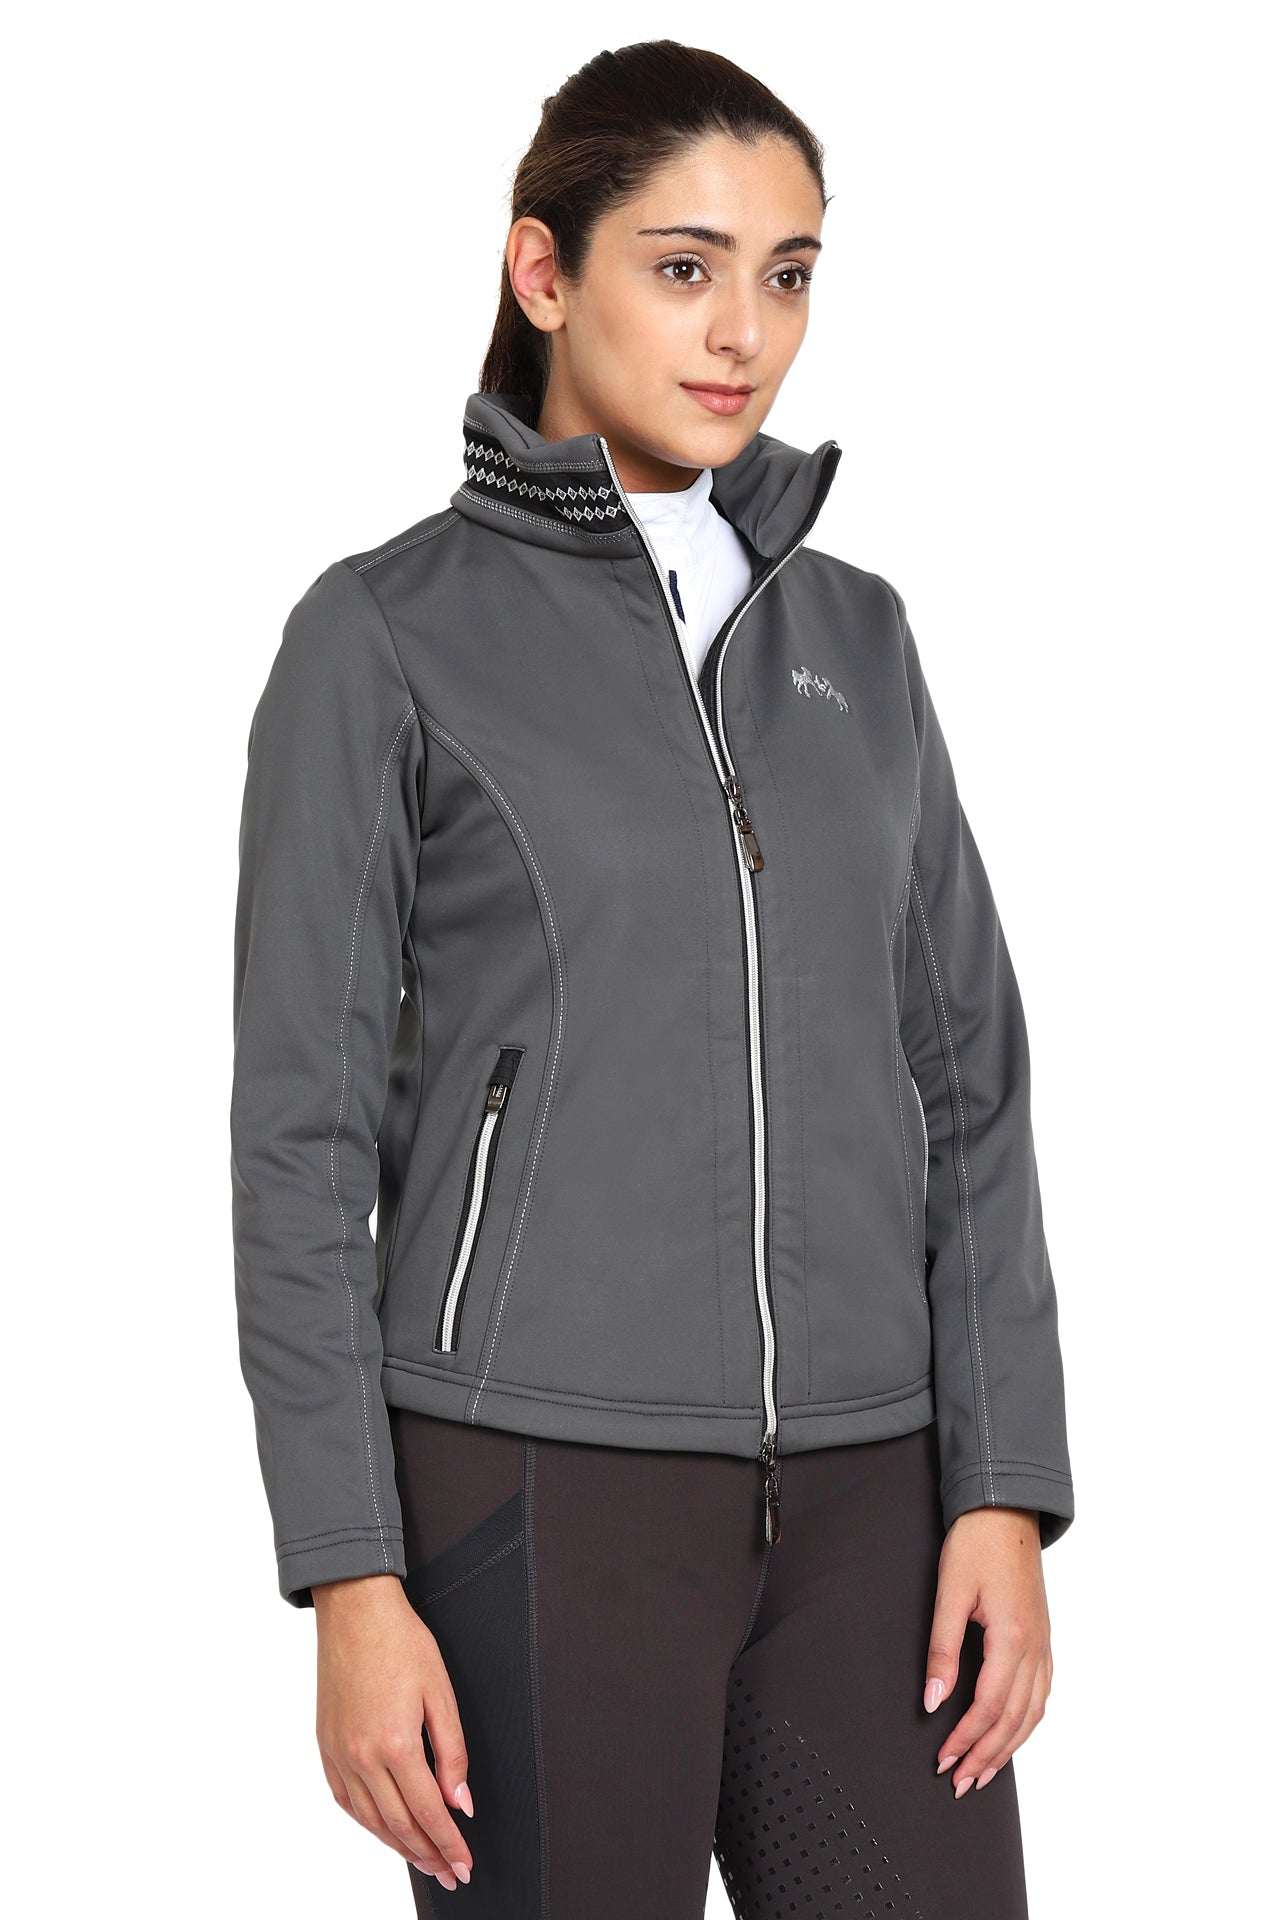 EQUINE COUTURE LADIES BECCA SOFT SHELL JACKET WITH FLEECE - Equine Couture - Breeches.com